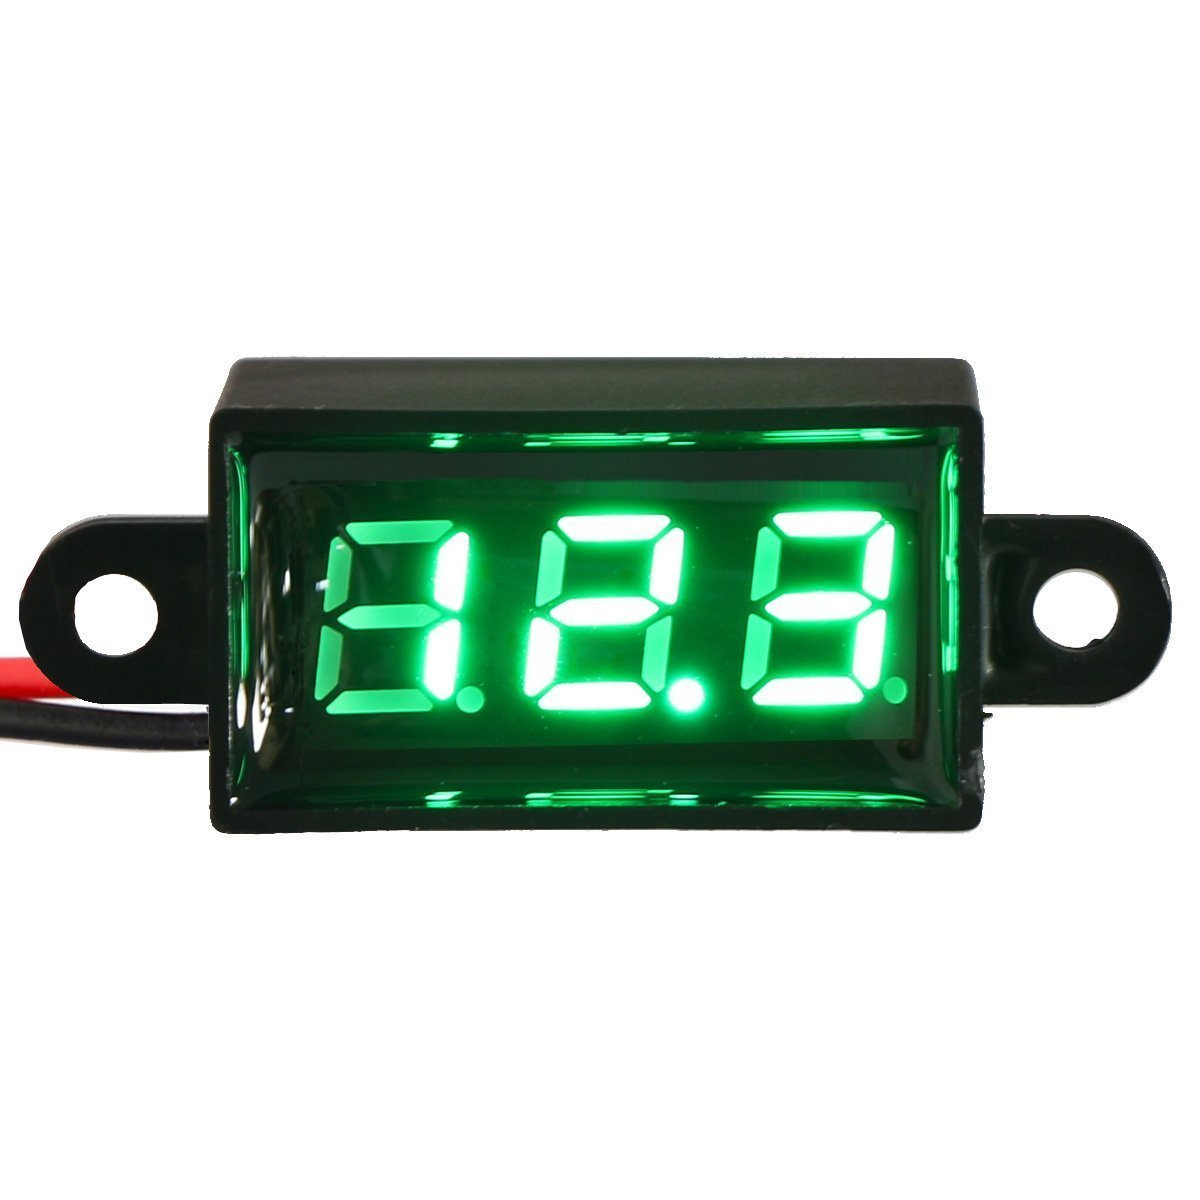 028inch-3530V-Two-Wire-DC-Voltmeter-Green.jpg